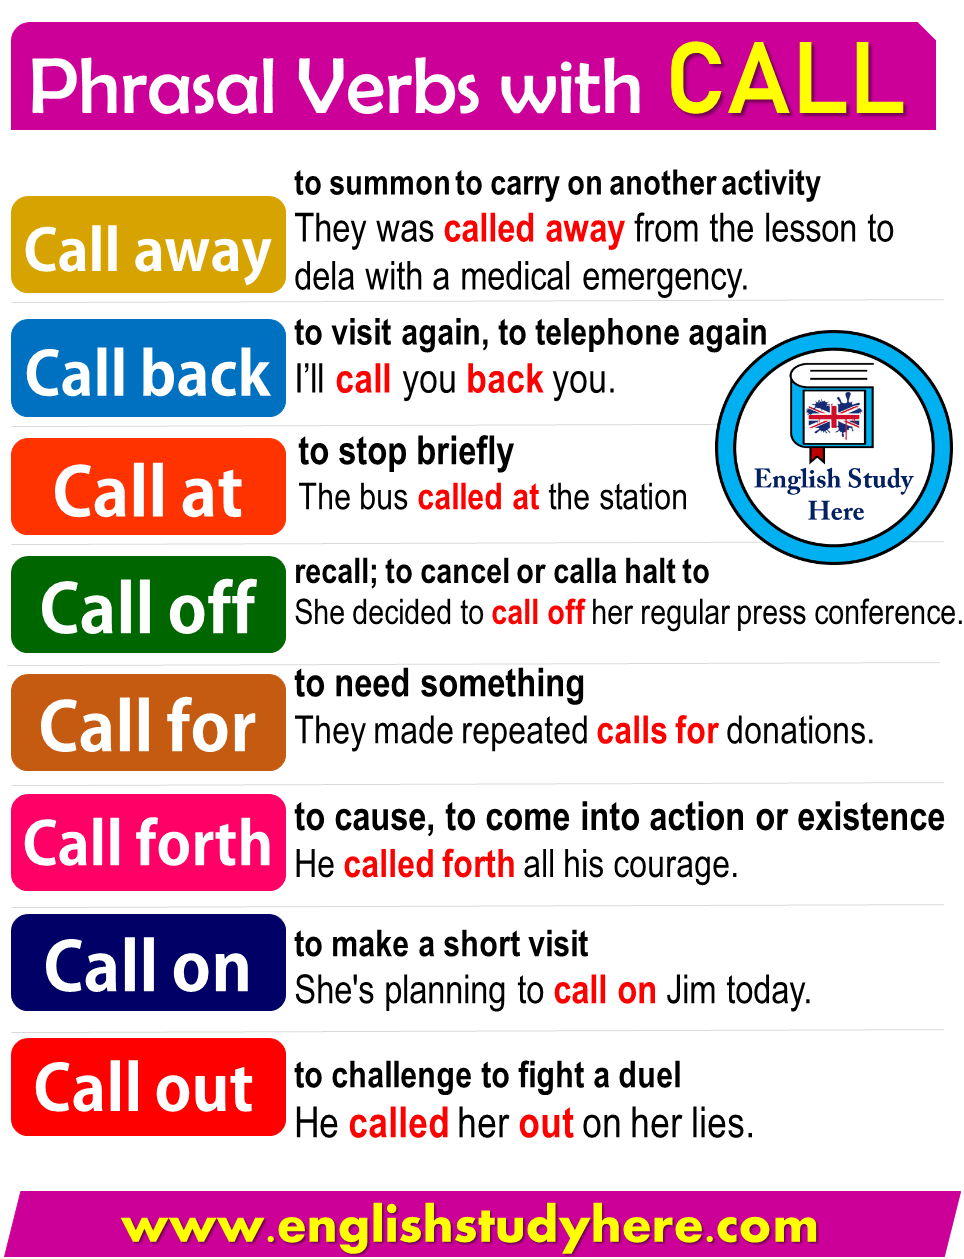 Phrasal Verbs with CALL in English